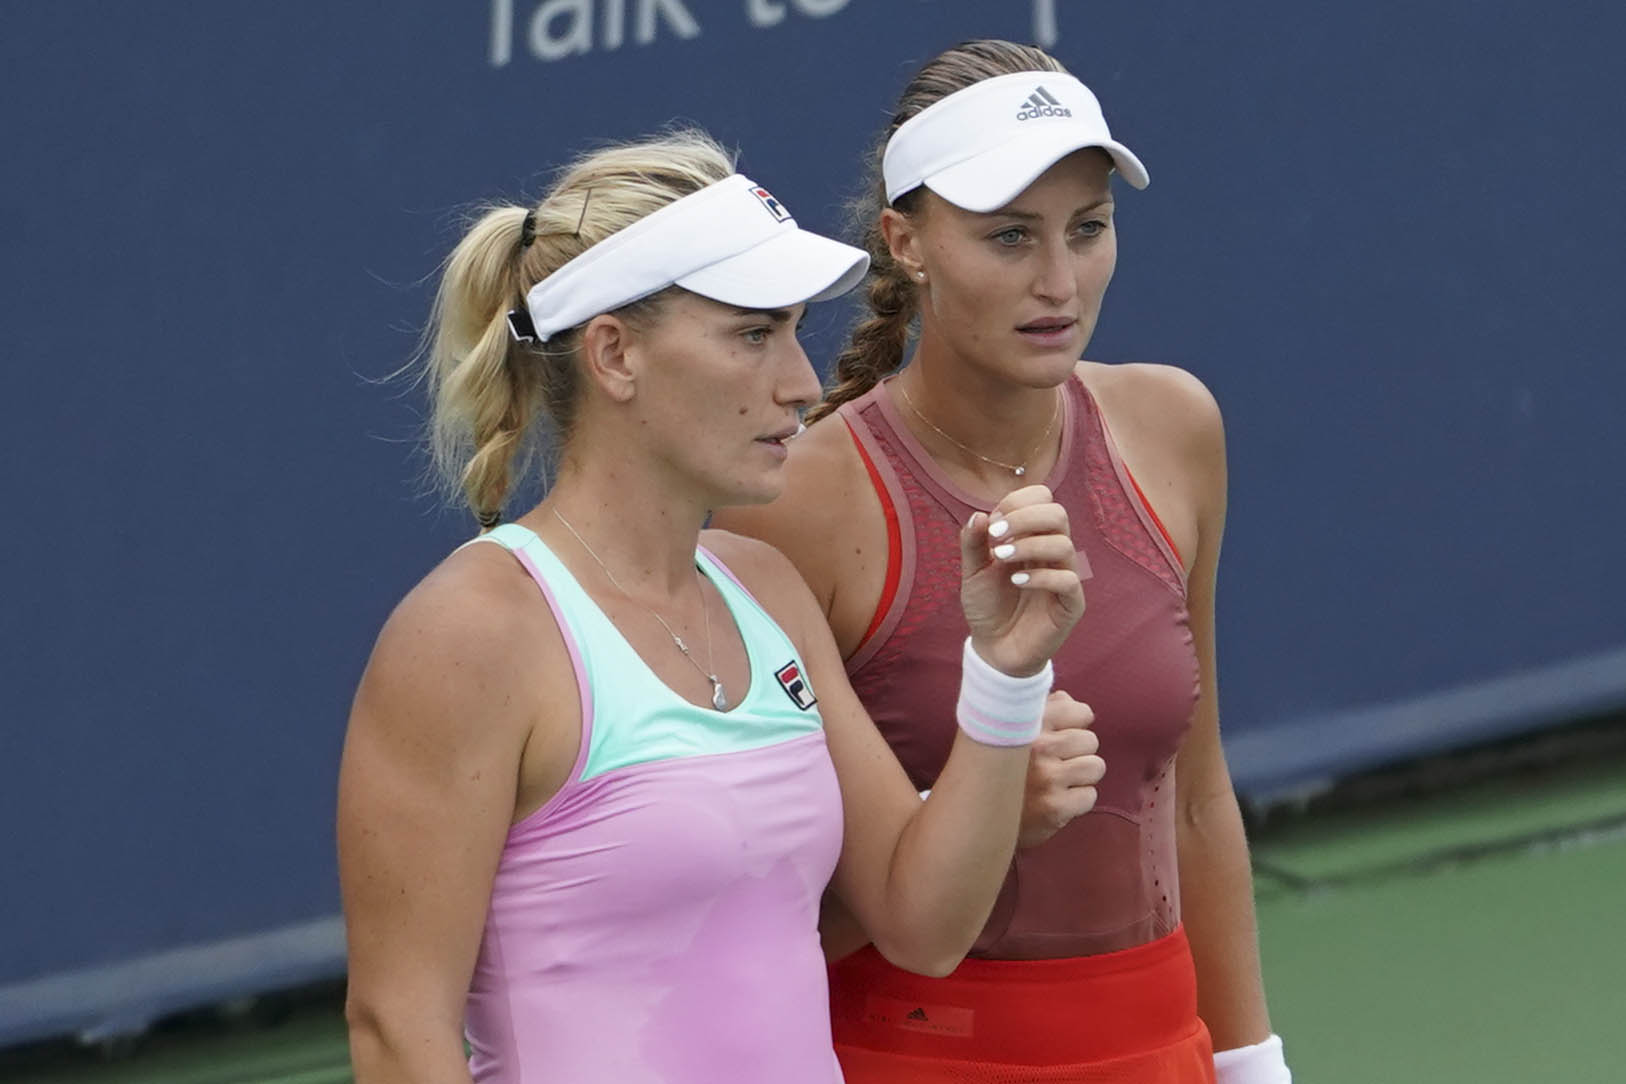 Timea Babos (left) of Hungary, prepares with her partner Kristina Mladenovic (right) of France, during a doubles match against Ekaterina Makarova, of Russia, and Lucie Hradecka, of the Czech Republic, at the Western & Southern Open tennis tournament on Friday in Mason, Ohio.